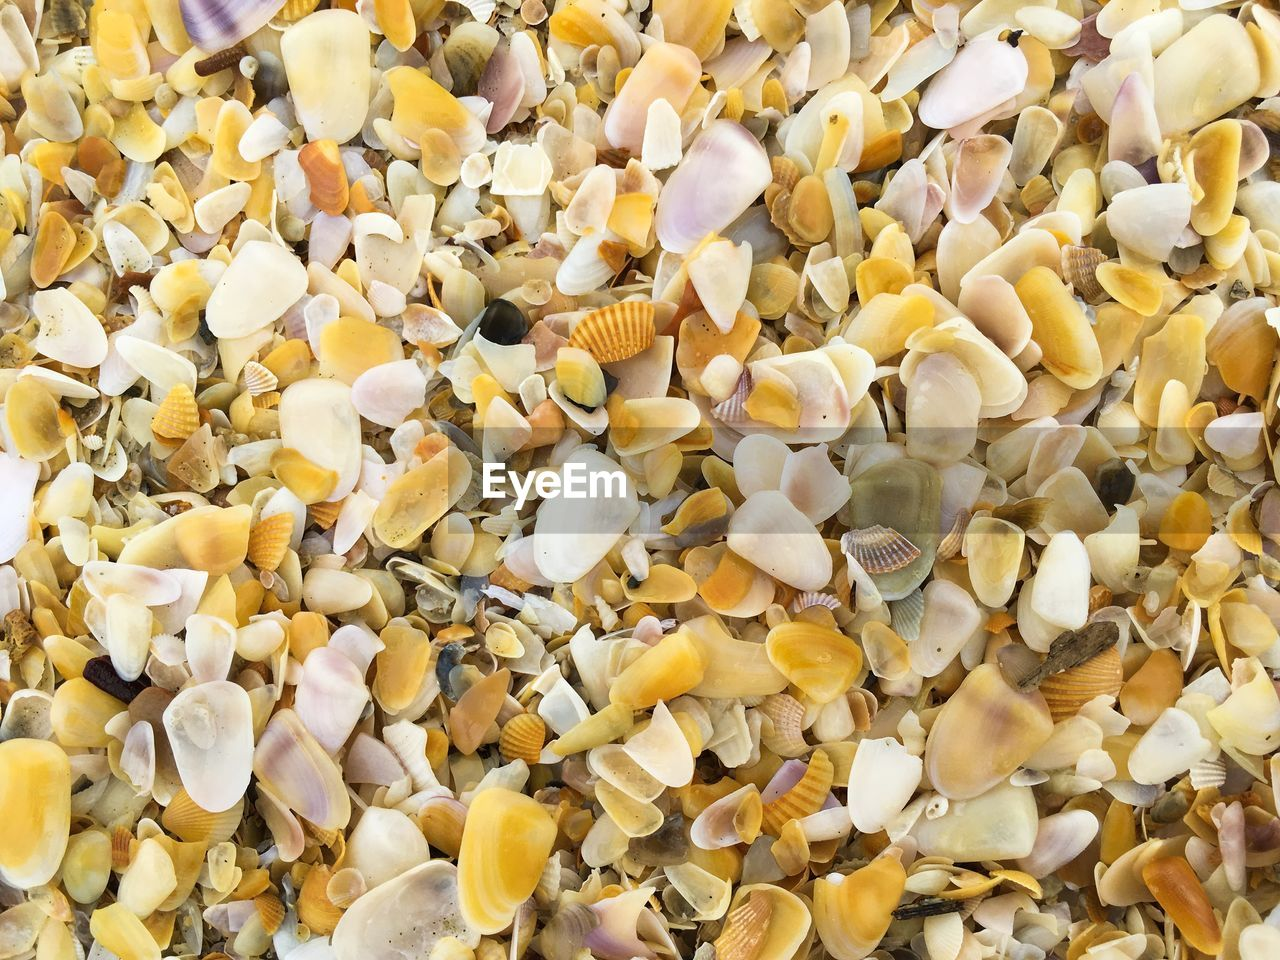 large group of objects, full frame, backgrounds, abundance, yellow, no people, close-up, shell, freshness, indoors, food and drink, food, still life, animal shell, animal wildlife, seashell, day, high angle view, corn, ingredient, snack